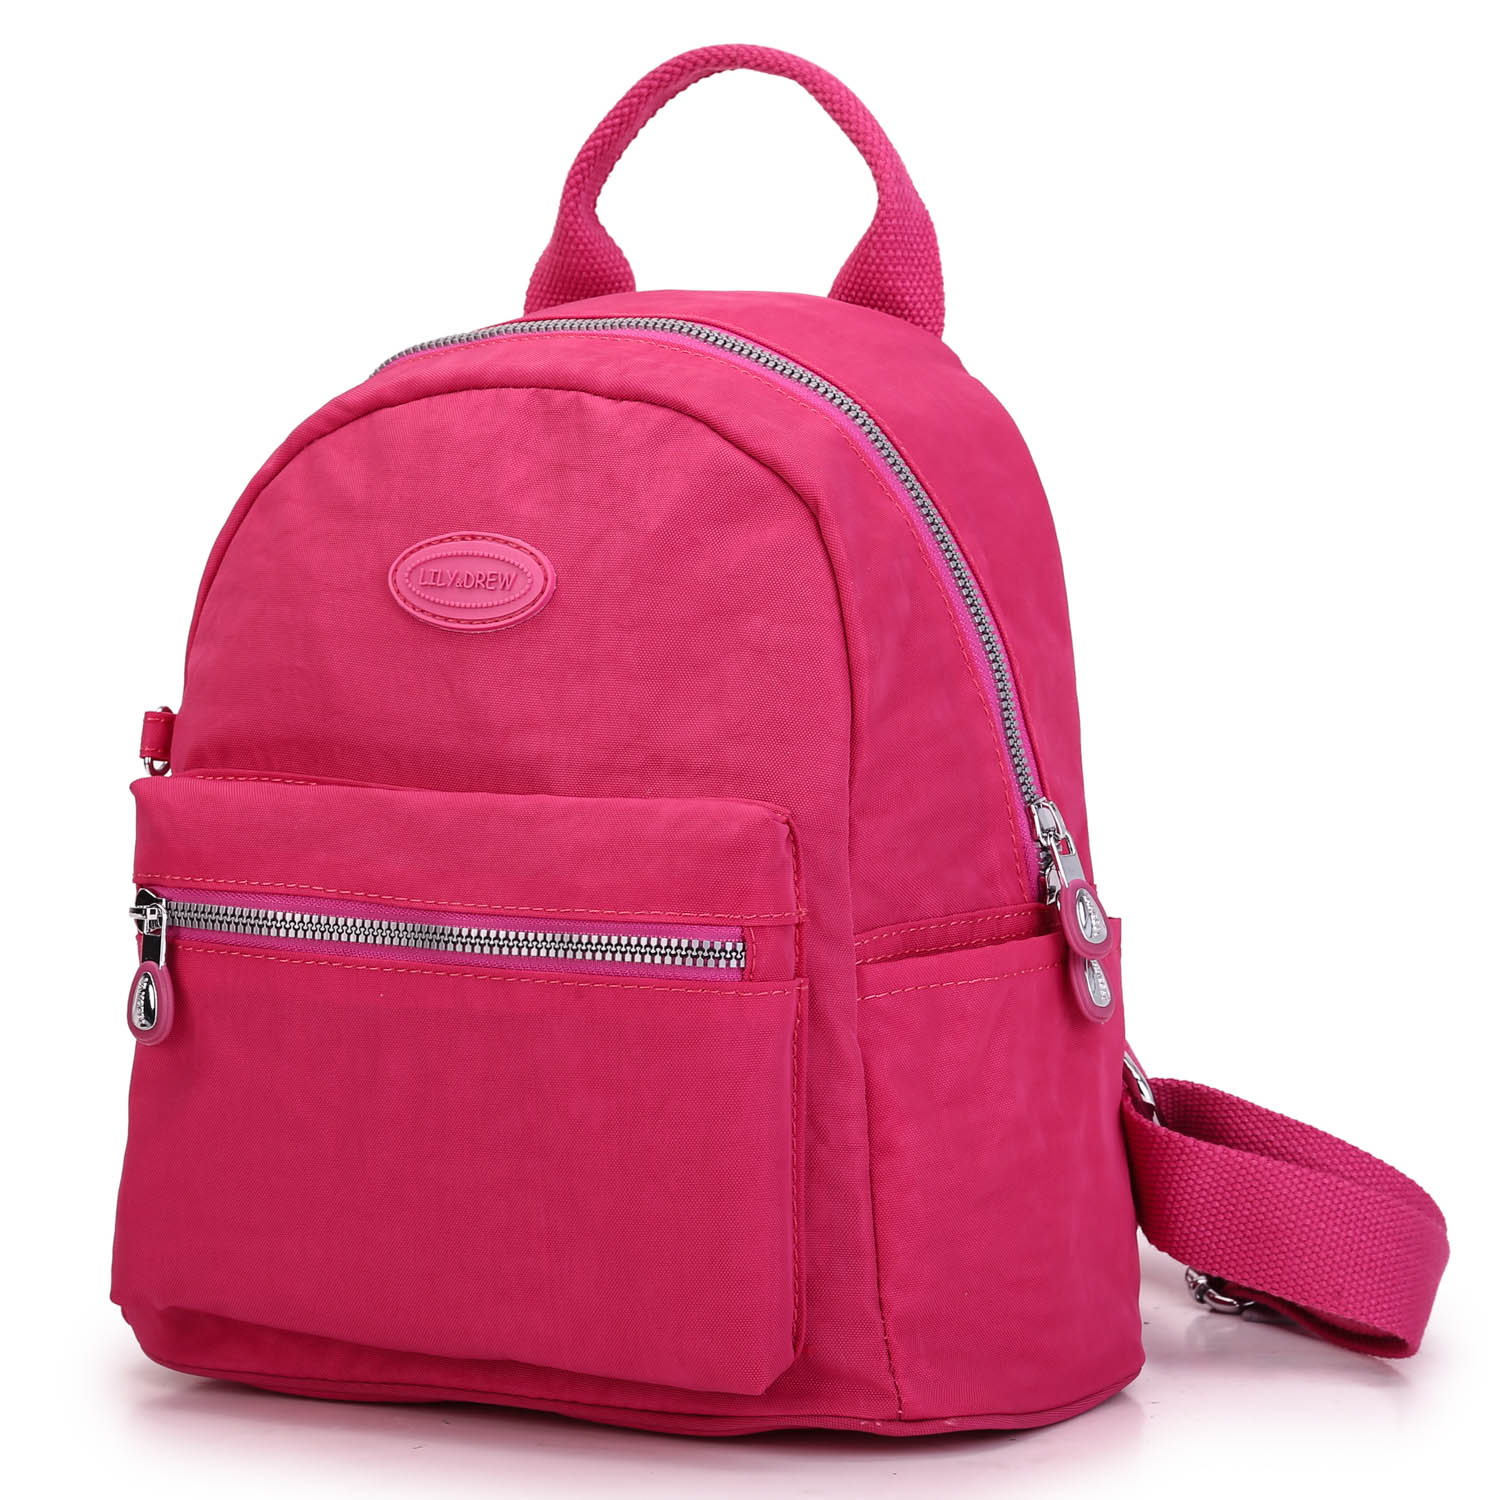 Lily & Drew Nylon Mini Casual Travel Daypack Backpack Purse (Solid ...